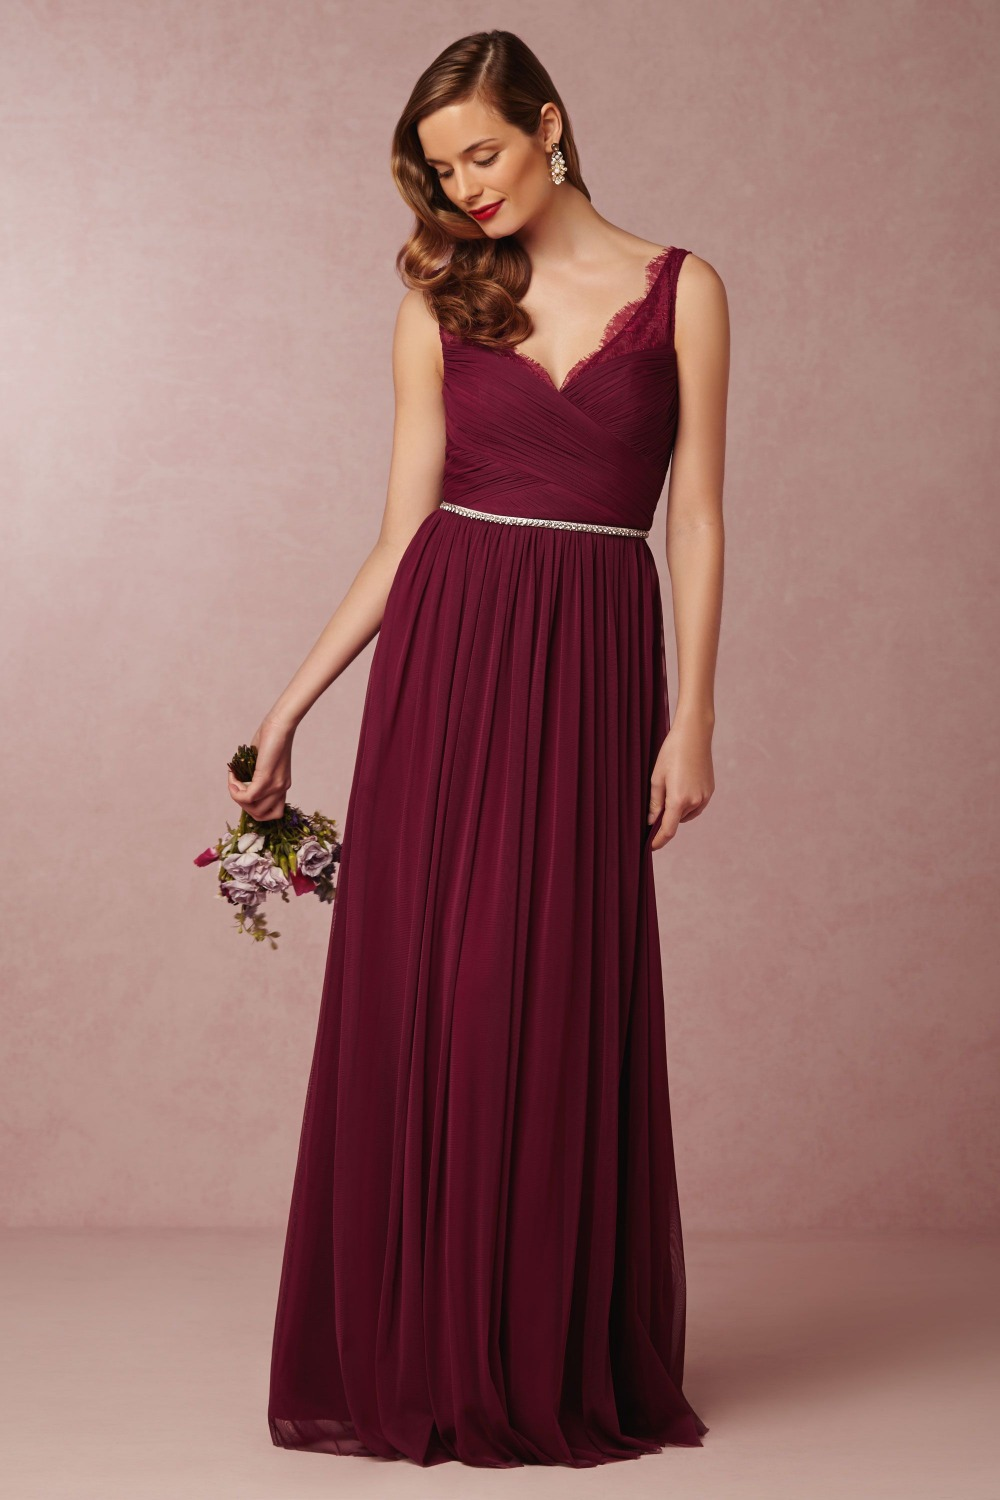 New Variety of Sashes Convertible Dress long Multi Color Prom party dress women Sexy V Back Maid of Honor Dress